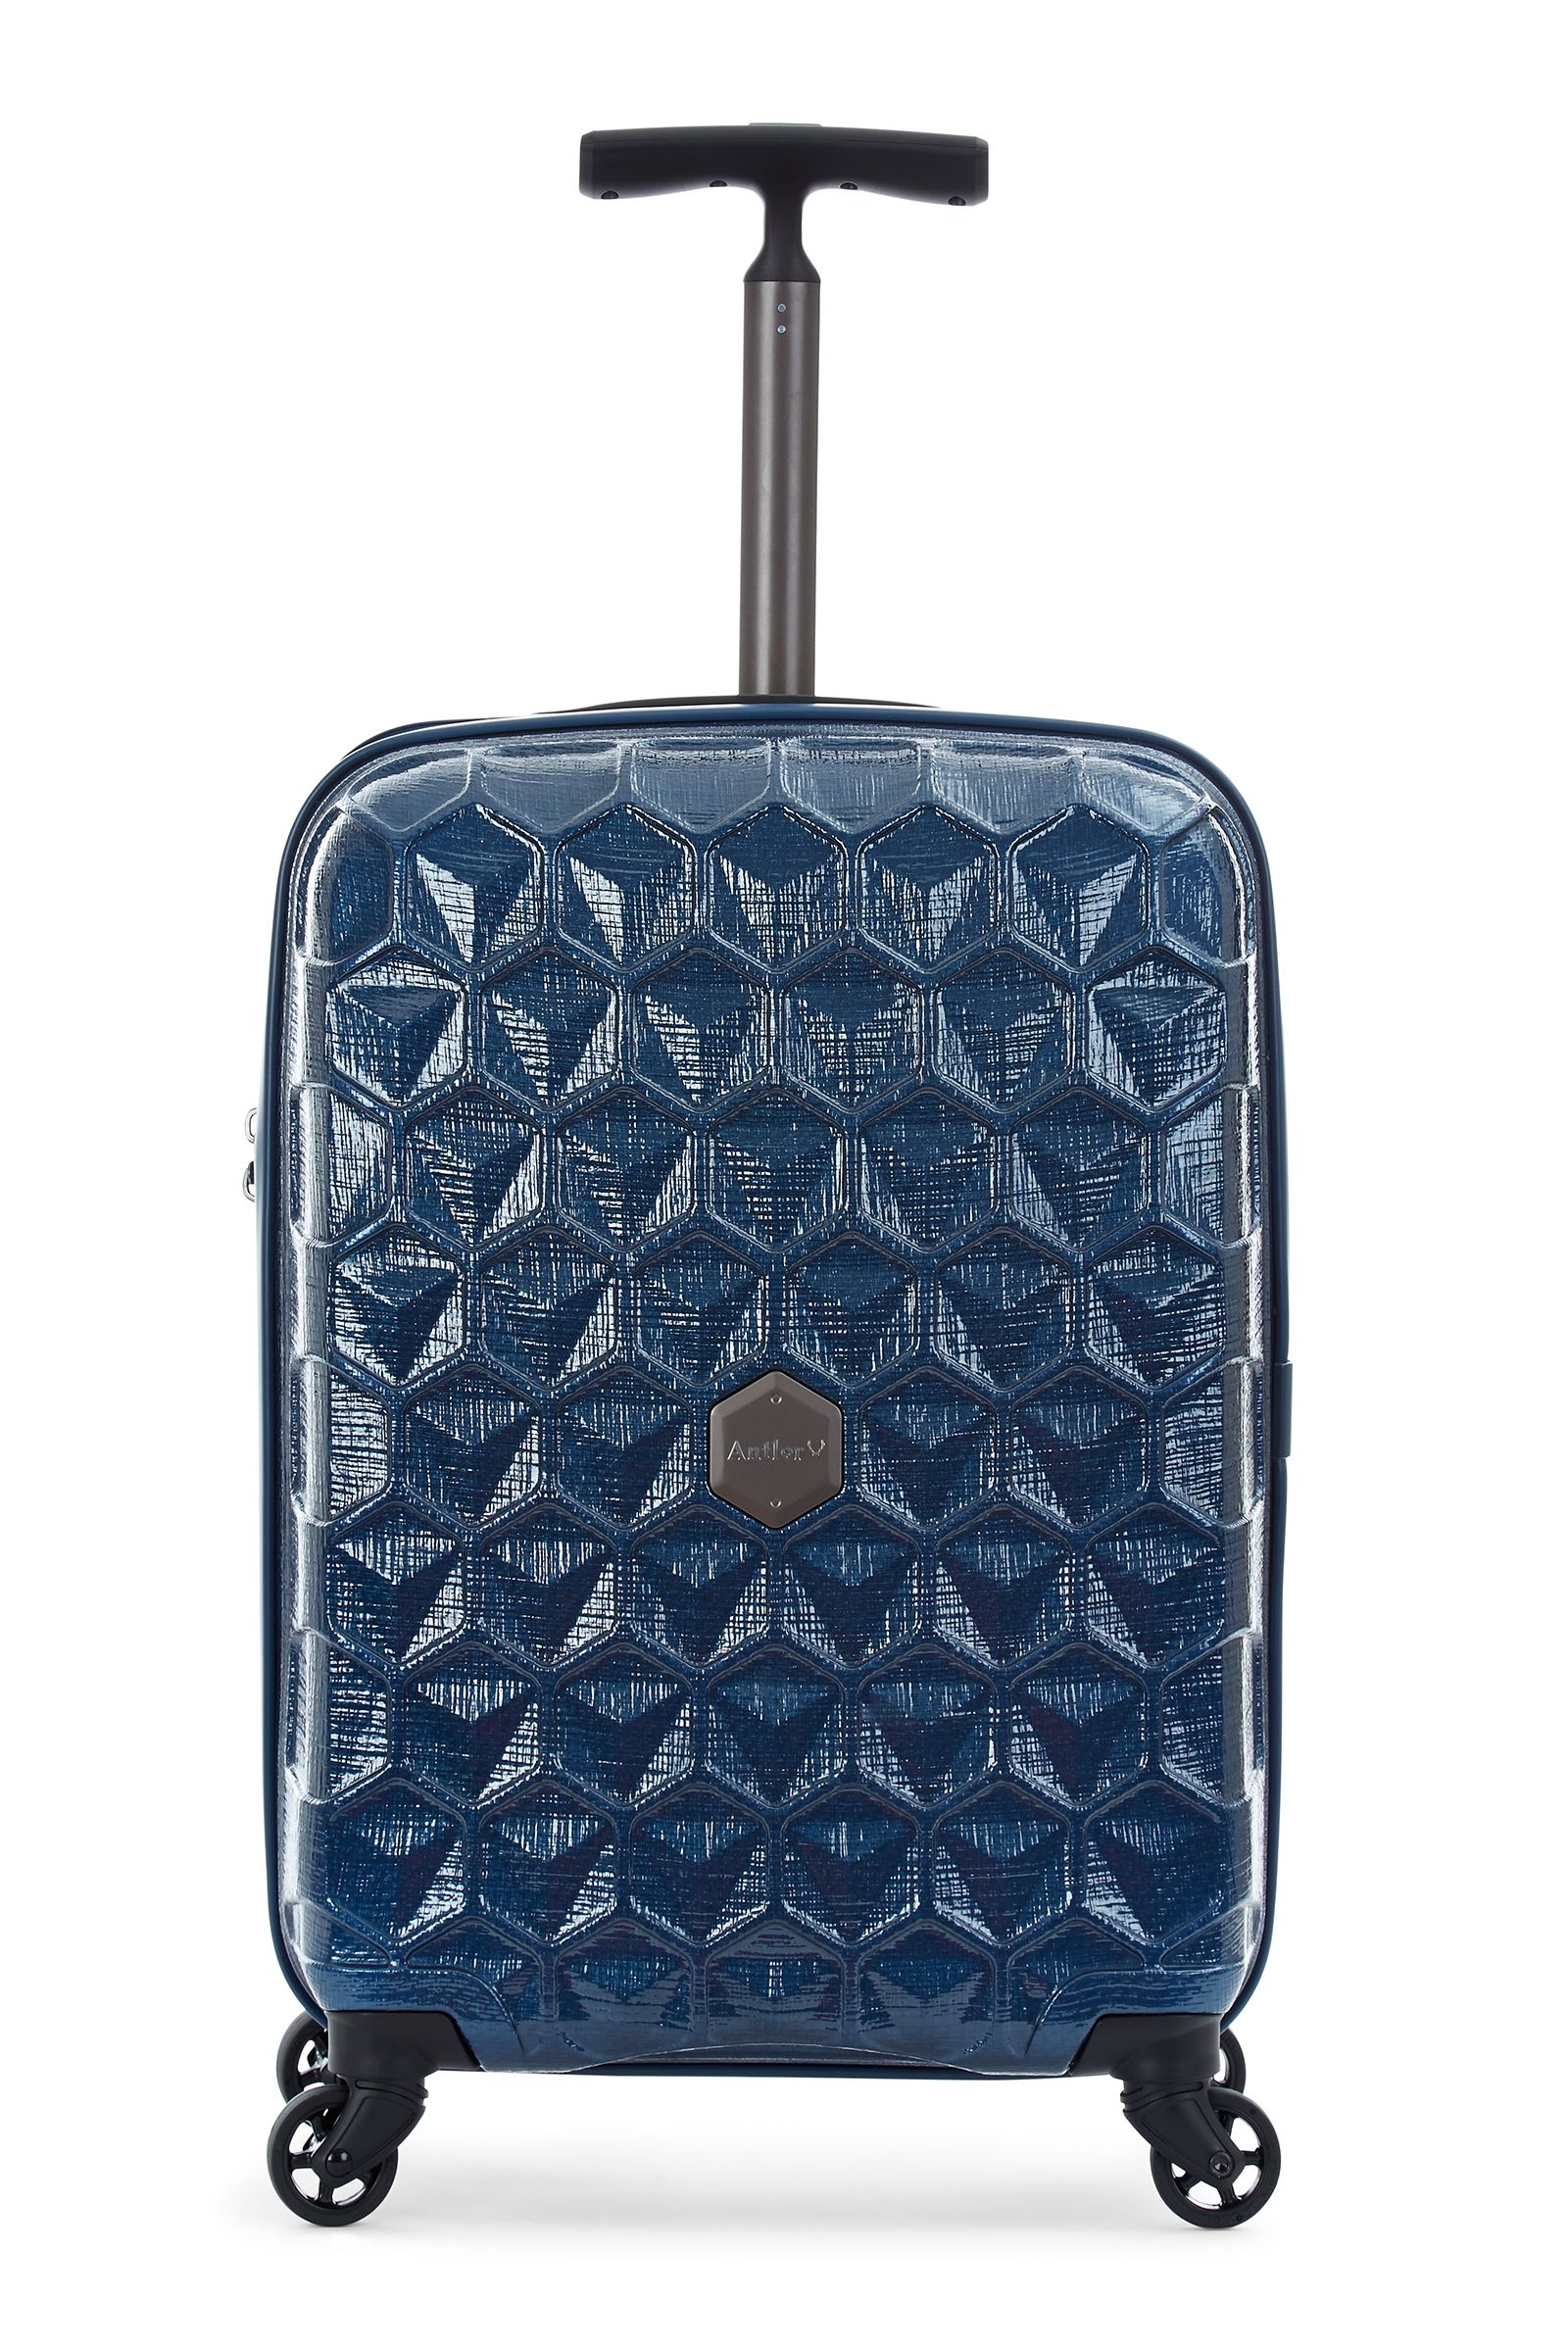 Antler Atom blue 4 wheel hard cabin suitcase Blue